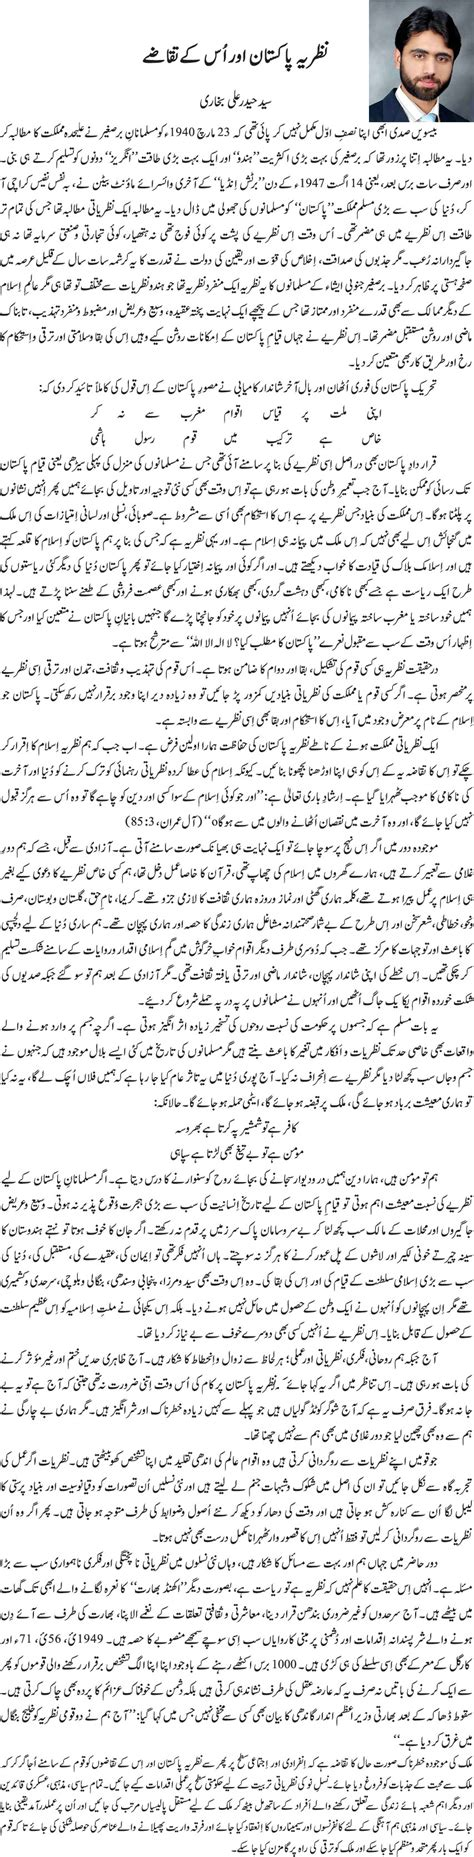 Nazria Pakistan Essay In Urdu by Nazria E Pakistan Or Us Taqazay By Syed Haider Ali Bukhari We Want To Change The Corrupt